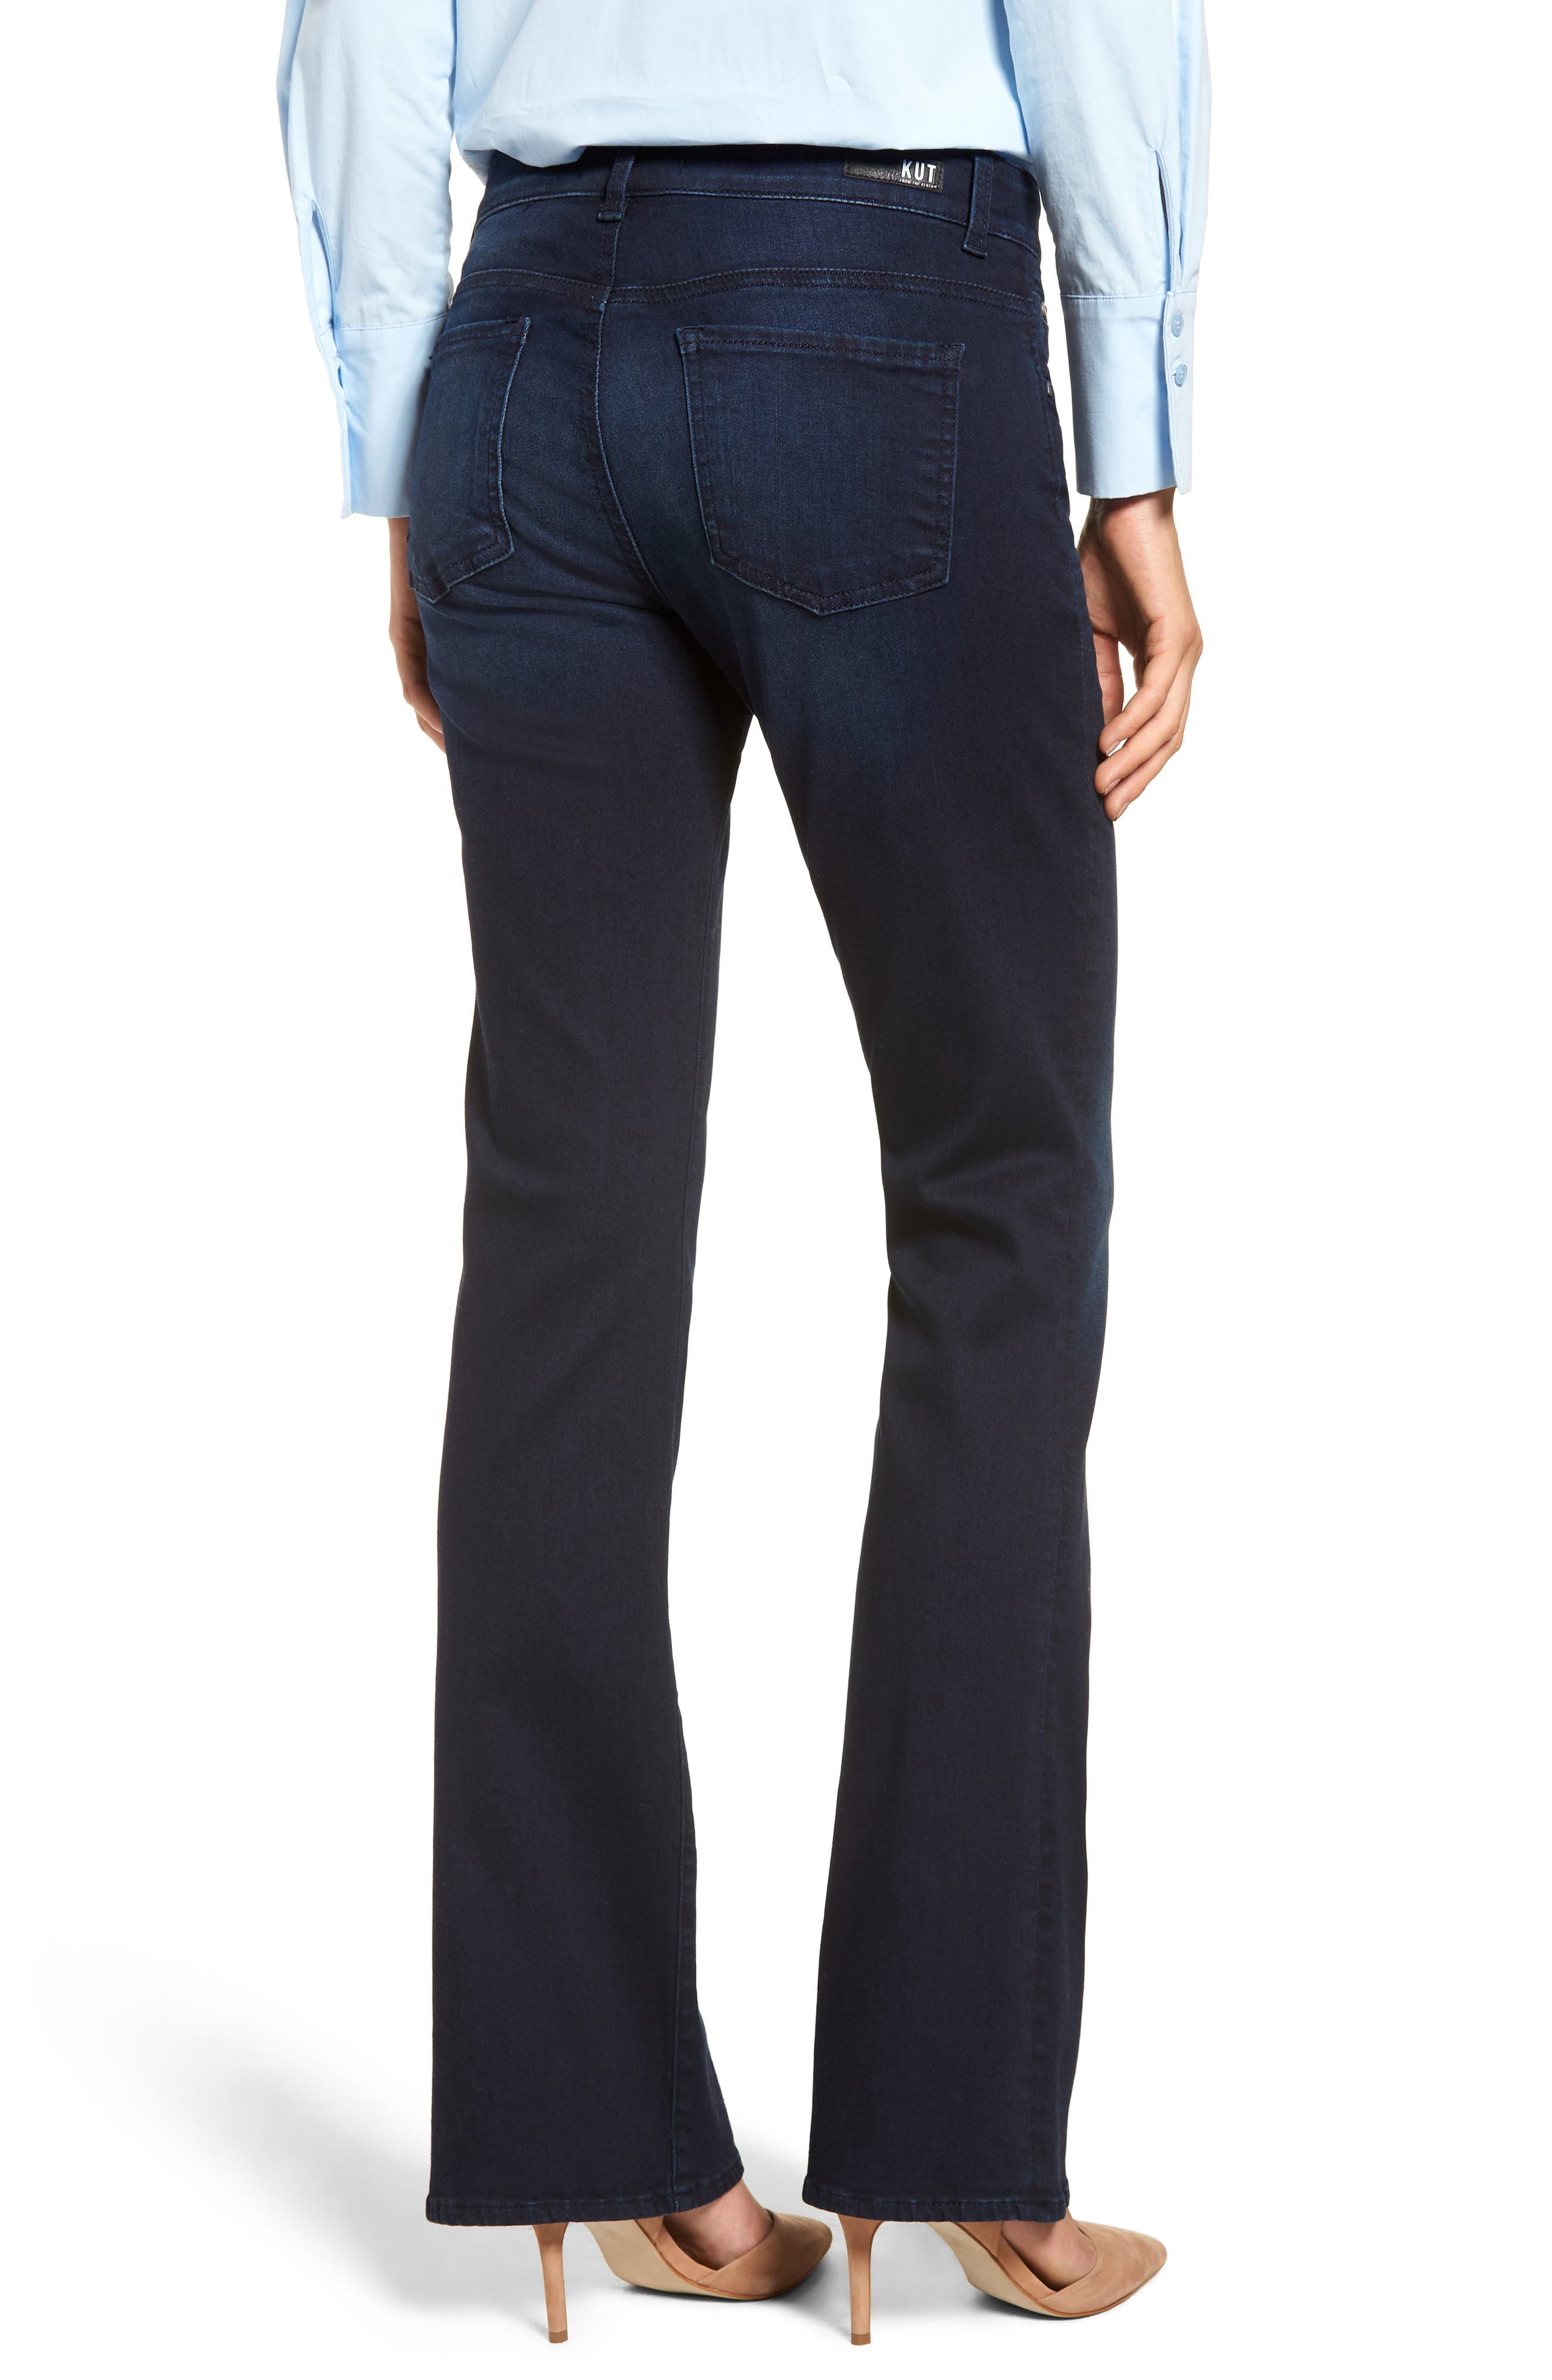 KUT FROM THE KLOTH, Natalie Stretch Bootleg Jeans, Alternate thumbnail 2, color, LIBERATING